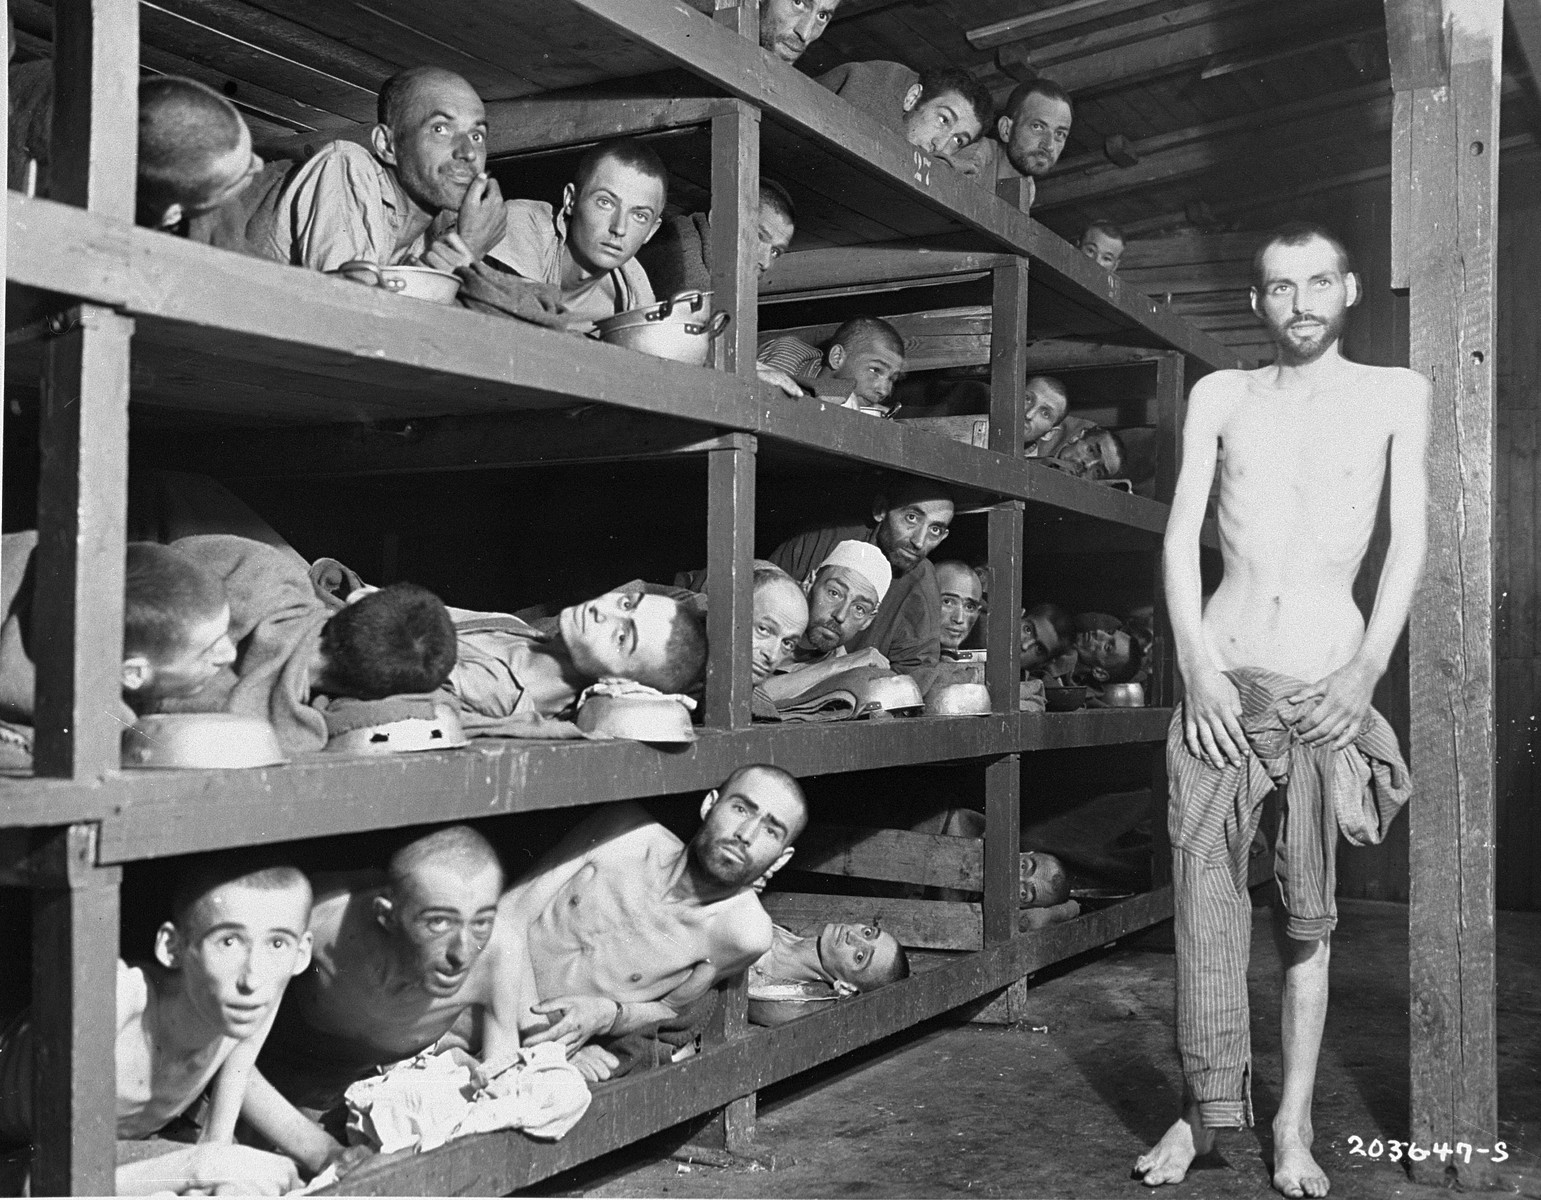 """Former prisoners of the """"little camp"""" in Buchenwald stare out from the wooden bunks in which they slept three to a """"bed.""""    Elie Wiesel is pictured in the second row of bunks, seventh from the left, next to the vertical beam.    The man in the bottom left hand corner has been identified as Michael Nikolas Gruner, originally from Hungary, Gershon Blonder Kleinman or Yosef Reich.  Isaac Reich is in the bottom row, second from the right and Max Hamburger is on the bottom row, fourth from the left.  Perry Shulman from Klimitov, Poland is on the top bunk, second from the left (looking up).  The man in the second row, third from left has been identified as Dawid Najman.  The man in the second row, fourth from the left has been identified as Abraham Hipler;  Berek Rosencajg from Lodz or Zoltan Gergely from Cluj.  The man on the third bunk from the bottom, third from the left, has been identified alternatively as Ignacz (Isaac) Berkovicz, Abraham Baruch and Joseph Icovic )from Tecovo) .  Juraj (now Naftali) Furst is pictured in the third bunk, fifth from the left. Standing on the right is Chaim David Halberstam.  In the top left bunk, far right is Oscar Kleinshpitz (later Haberkorn).    Original caption reads:  """"Slave laborers  pedred from their tomb-like, wooden bunks at the concentration camp at Buchenwald, near Weimar, Germany, when U.S. troops liberated the area.  Approximately 21,000 inmates - Russian, Polish, French, Italian, and Czechoslovakian - were freed.  They were described as """"the living dead"""".  The camp doctors agreed that a t least 6,000 inmates had died as the result of German brutality during March, 1945.  In the Winter of 1939, the prisoners died at the rate of 900 daily.  In 10 years, more than 70,000 persons were starved and butchered in this atrocity center."""""""